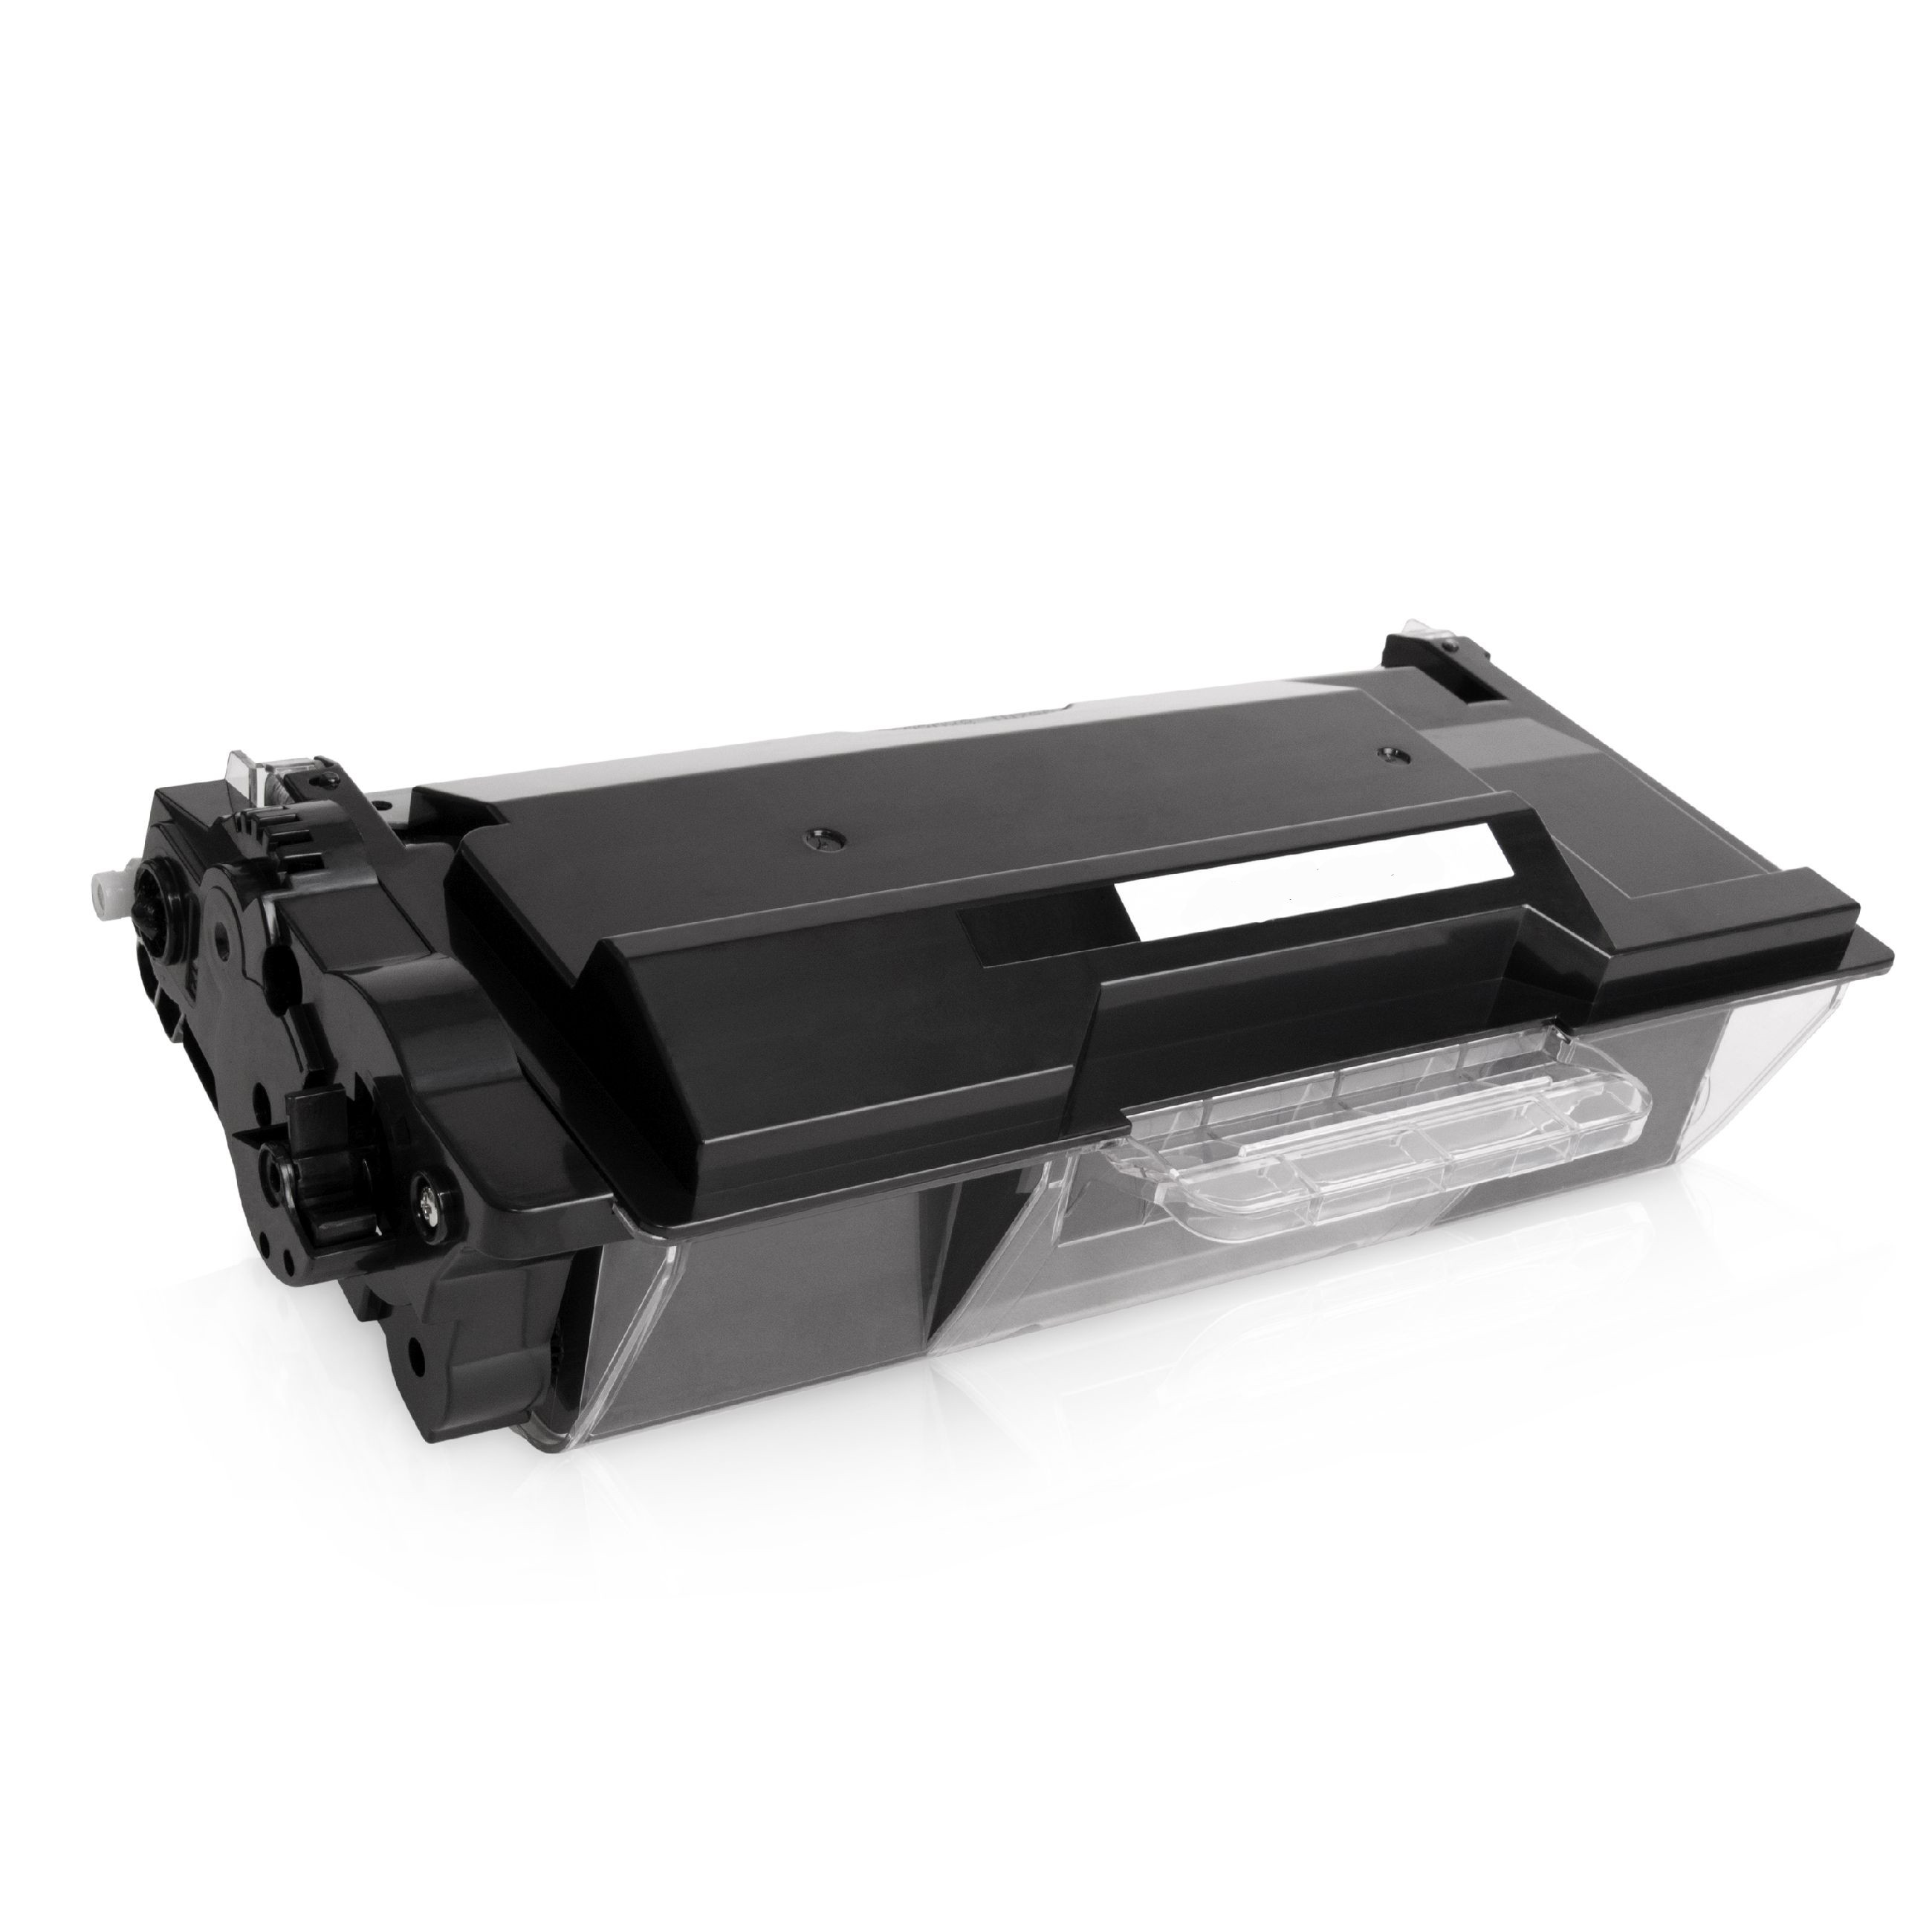 Bild fuer den Artikel TC-BRO3430: Alternativ-Toner BROTHER TN3430 in schwarz